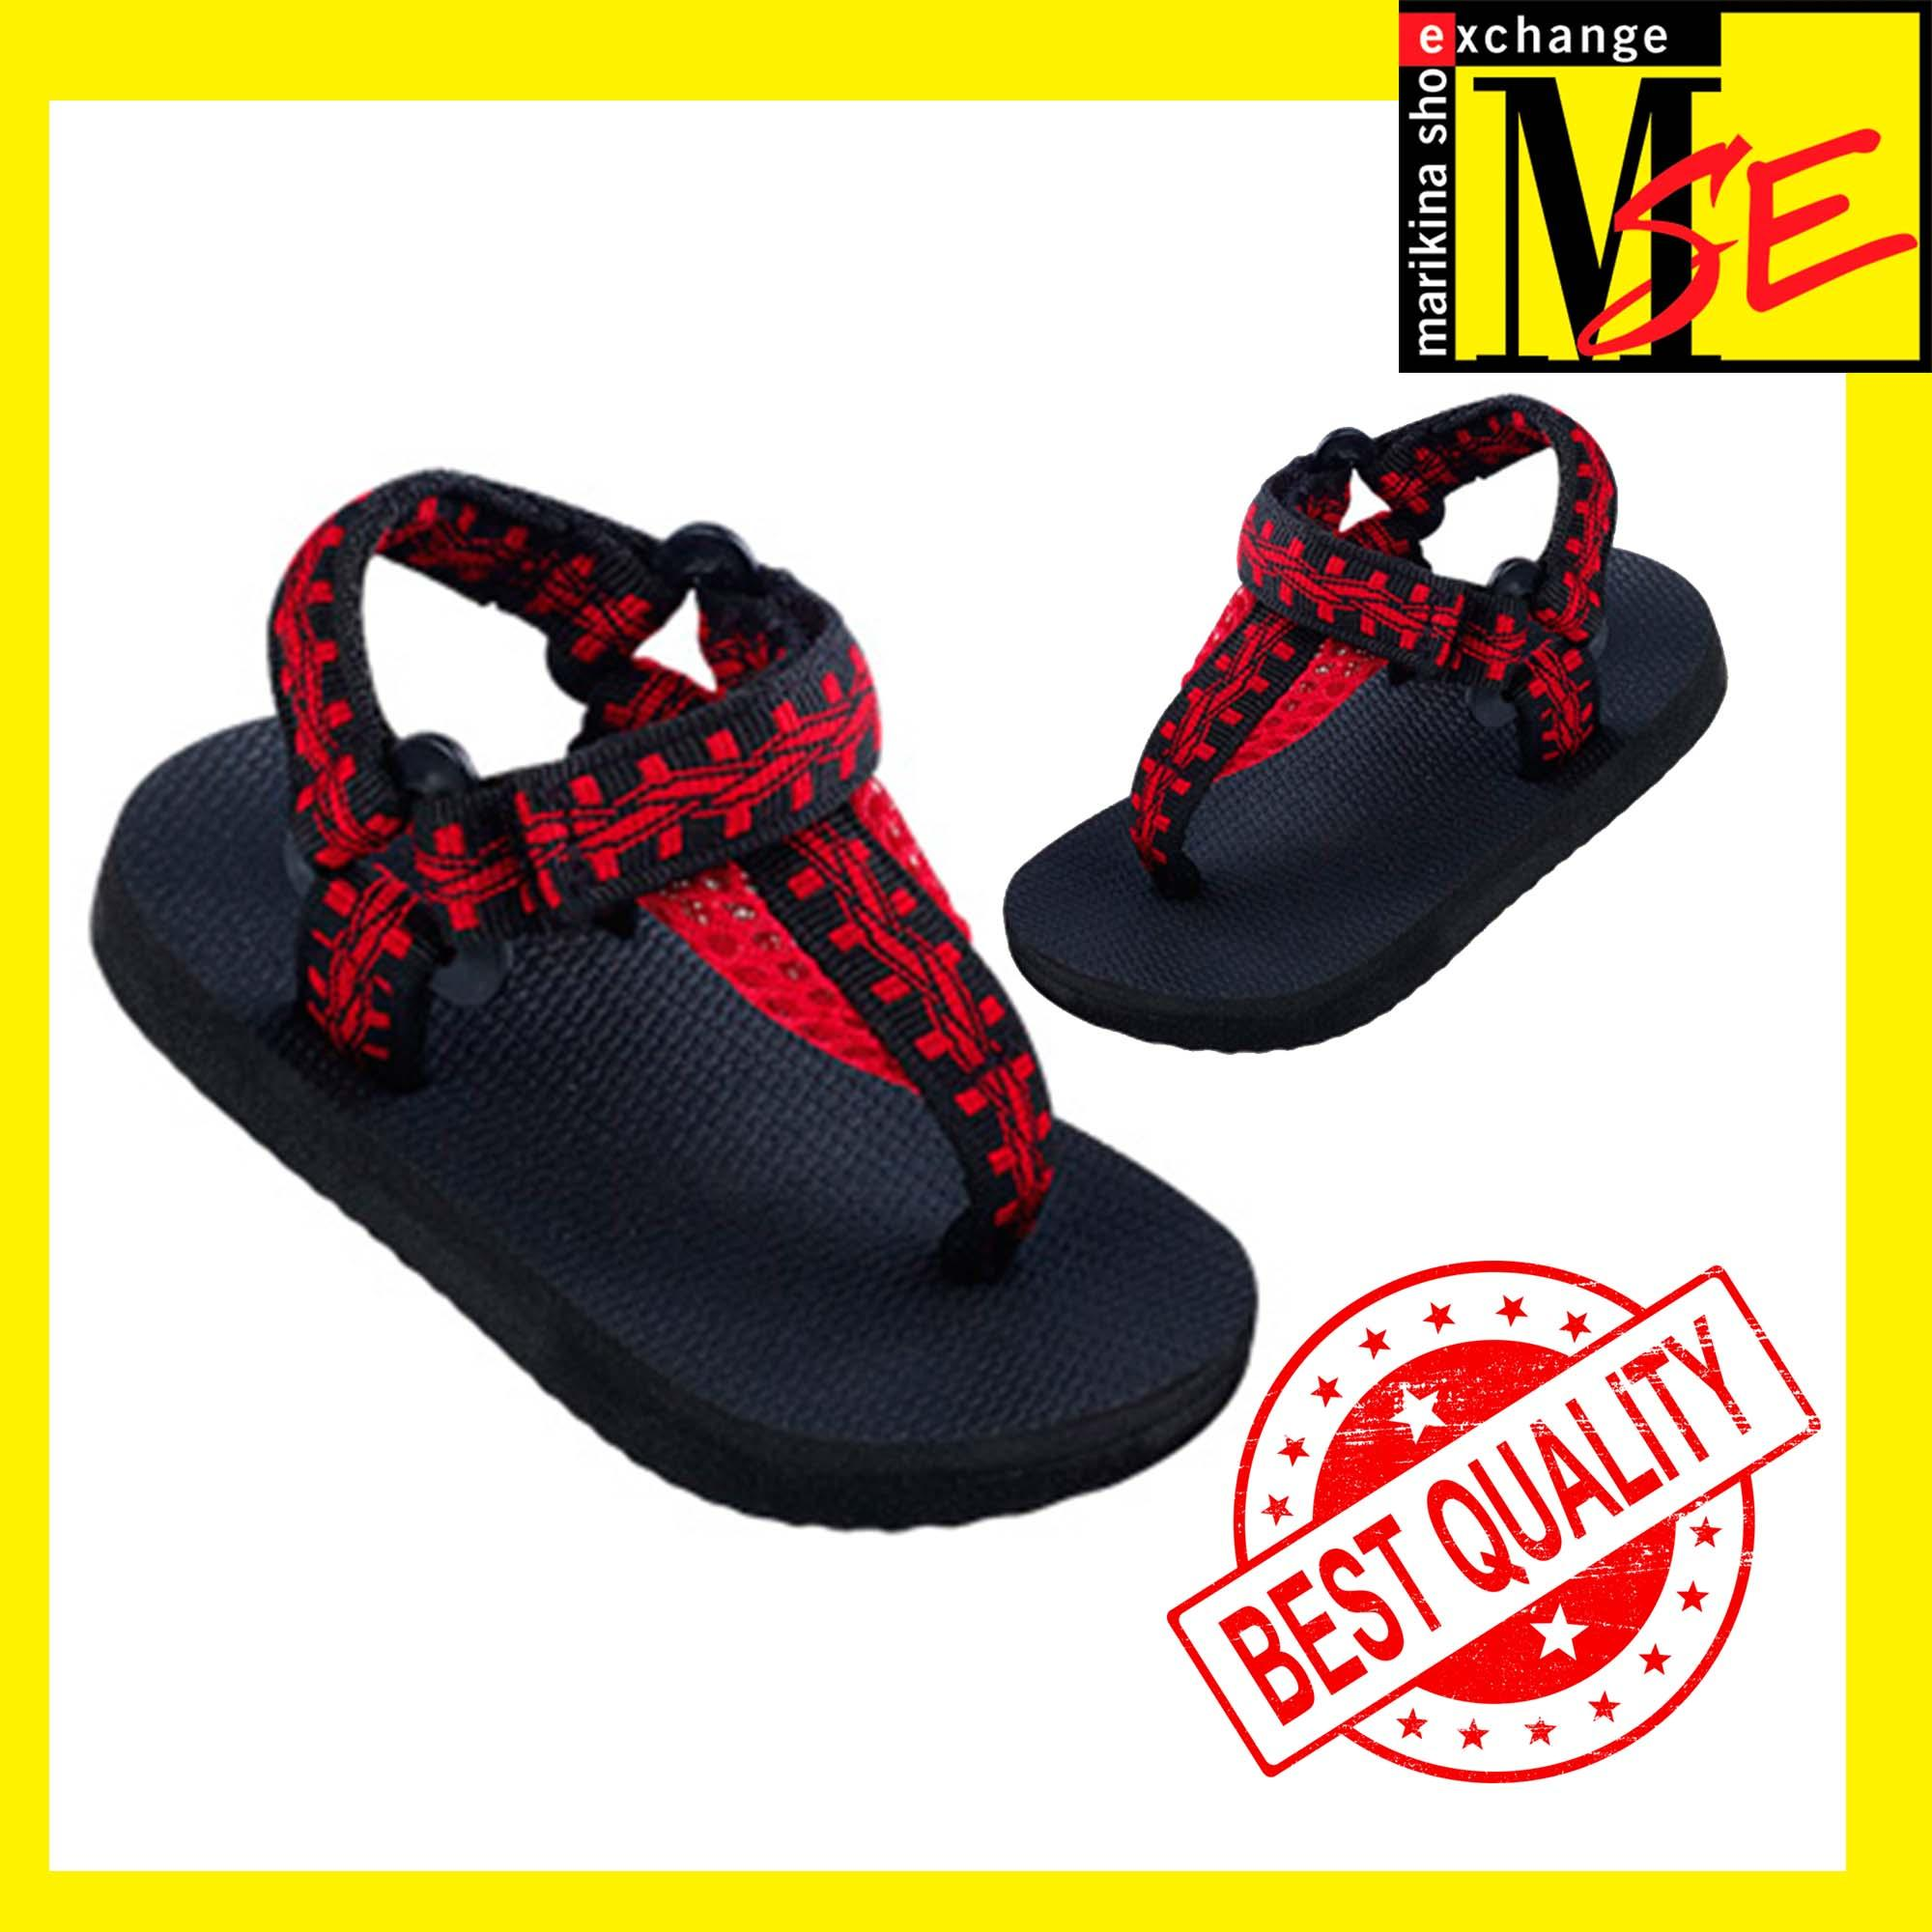 b321a5df798c22 Baby Shoes for Boys for sale - Boys Shoes online brands